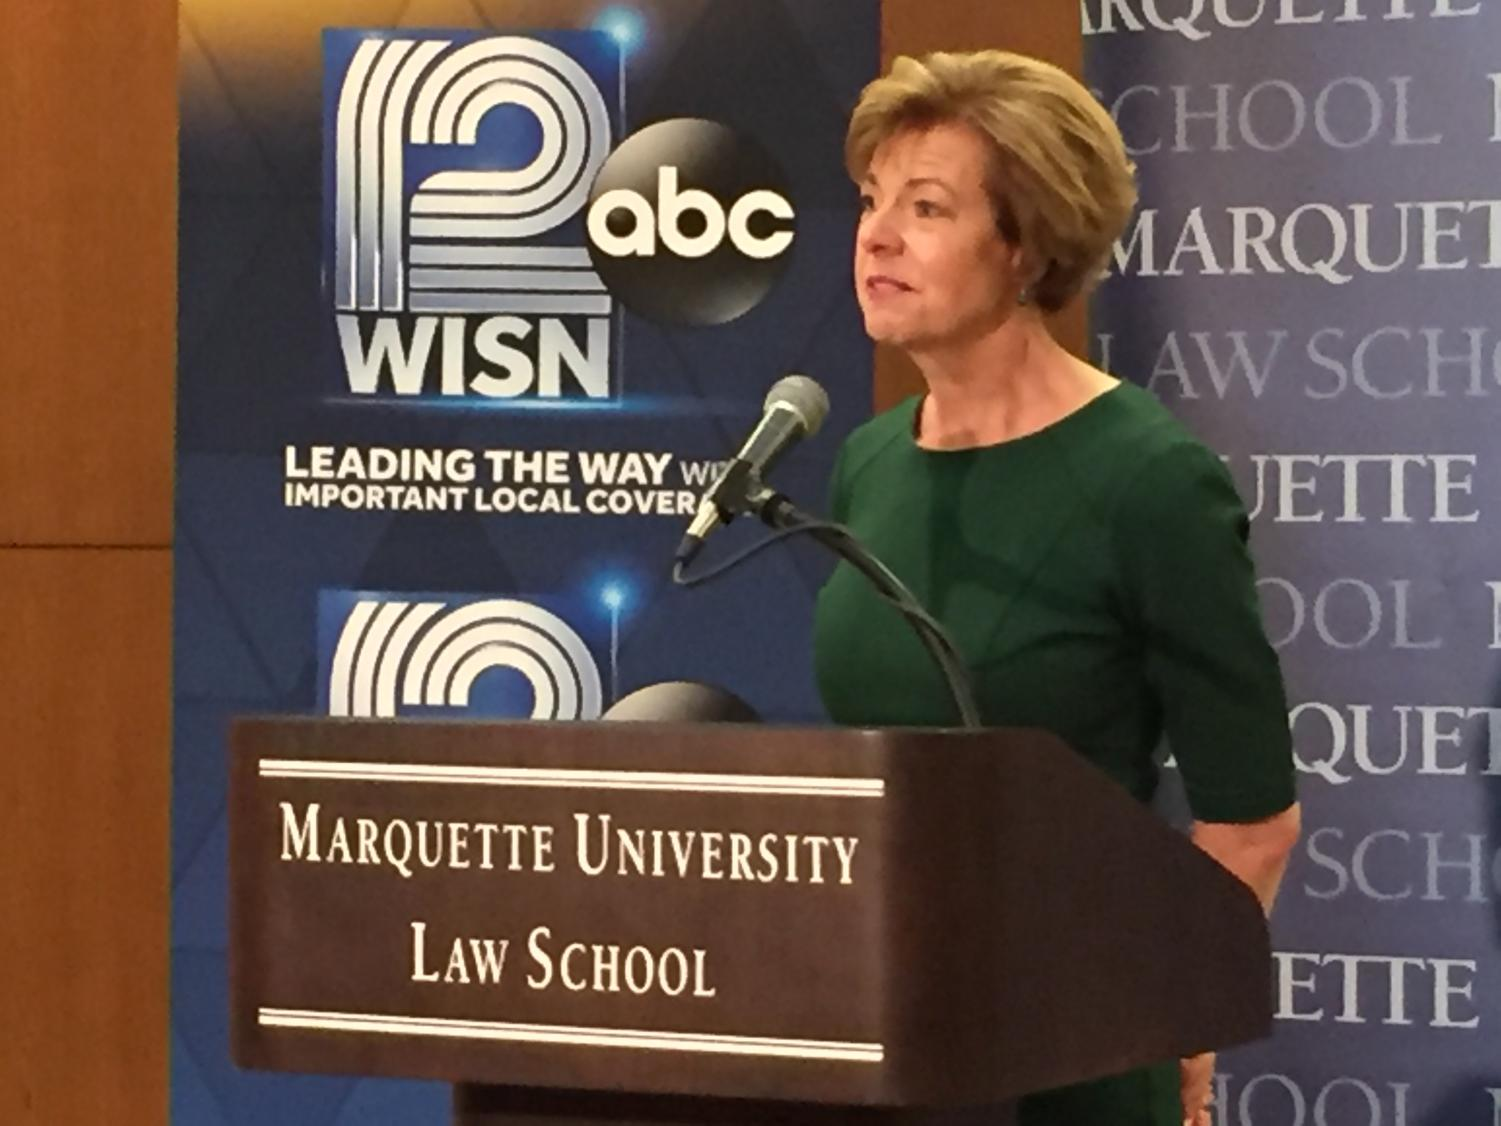 Sen. Tammy Baldwin talks to the media after the debate. Vukmir did not stay for the press conference.